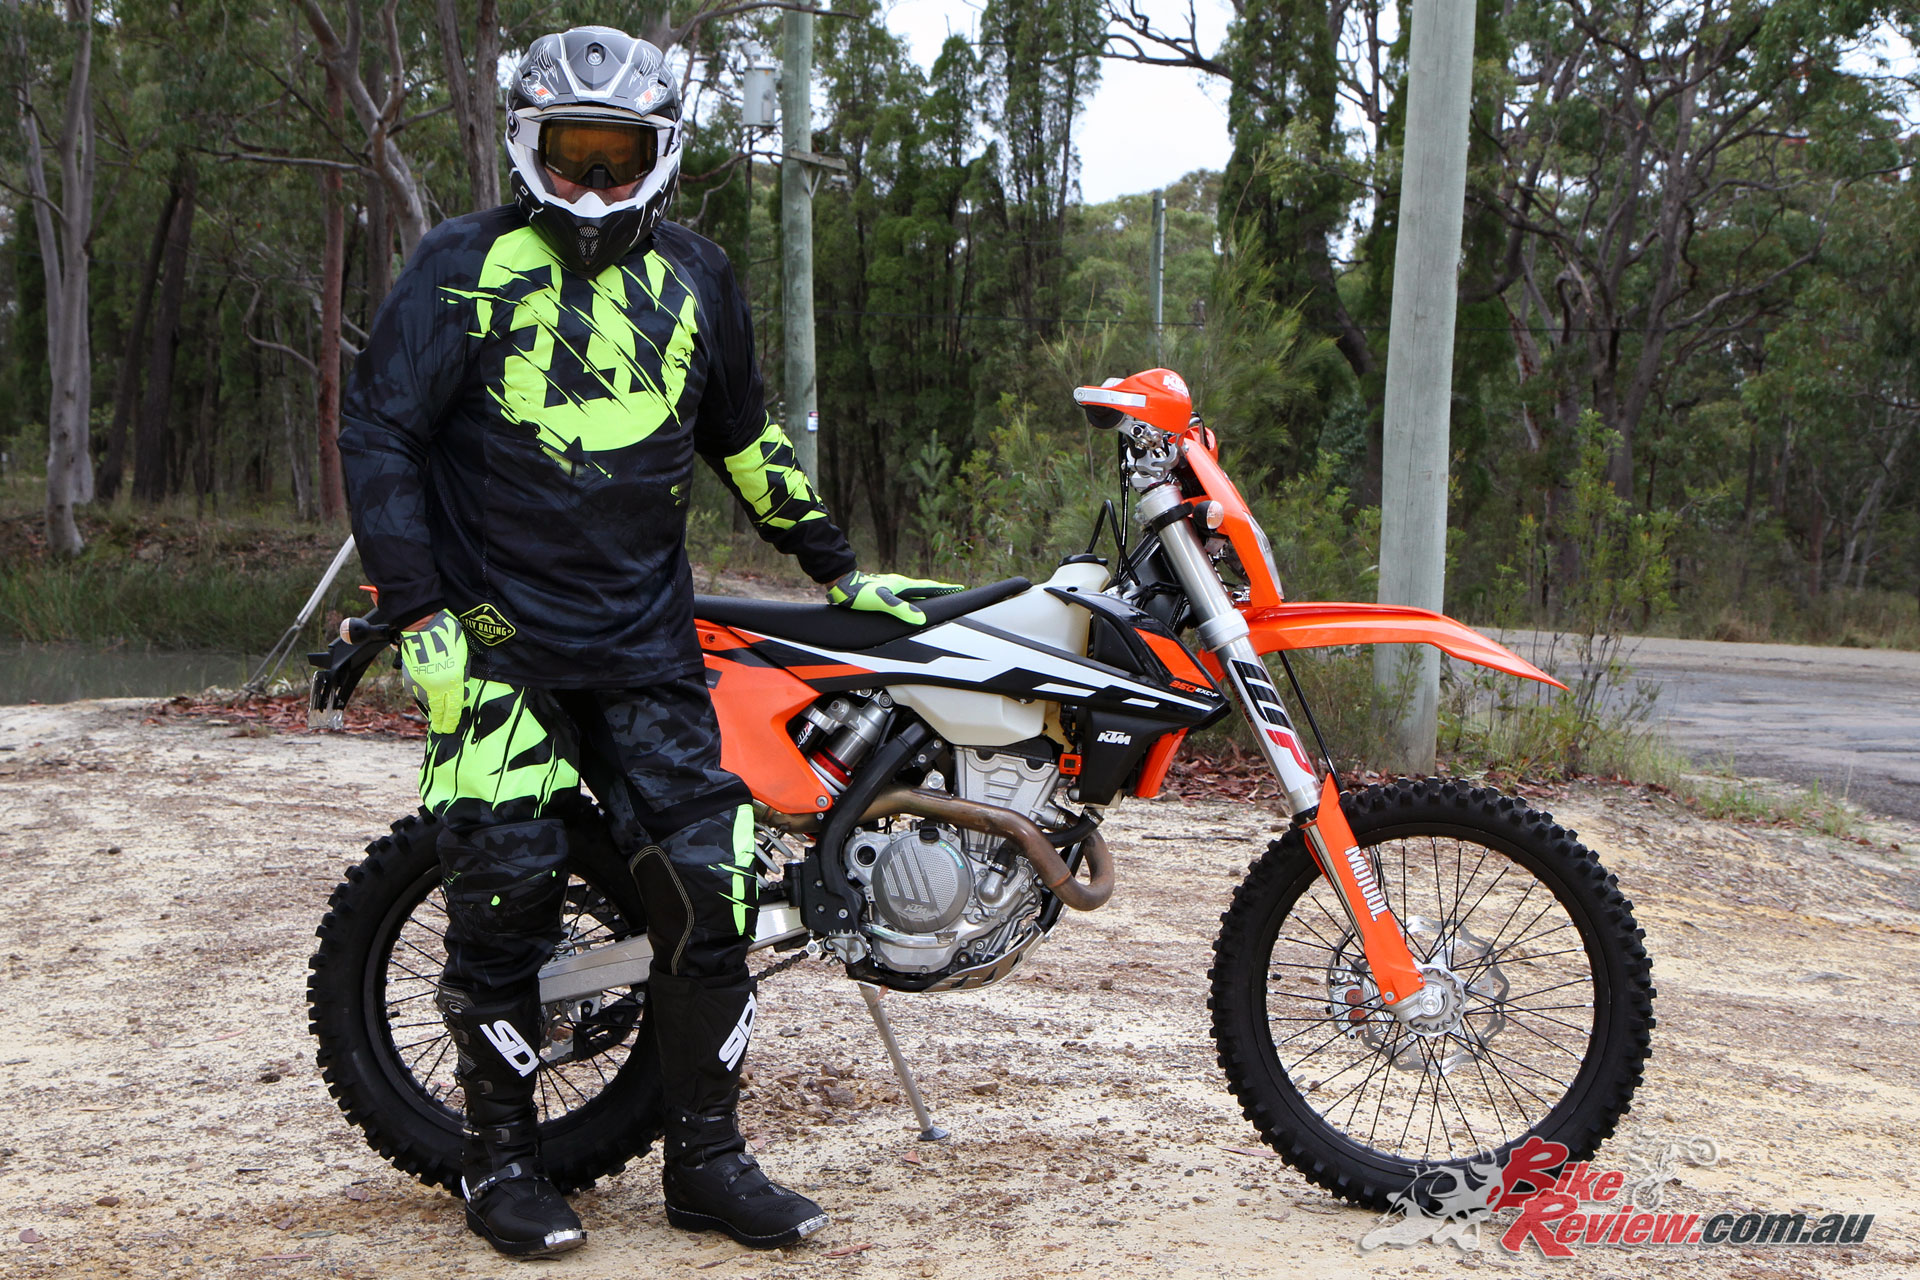 Mark in his Fly Racing gear, M2R X-4.5 Helmet and with the Bike Review Long Term 350 EXC-F